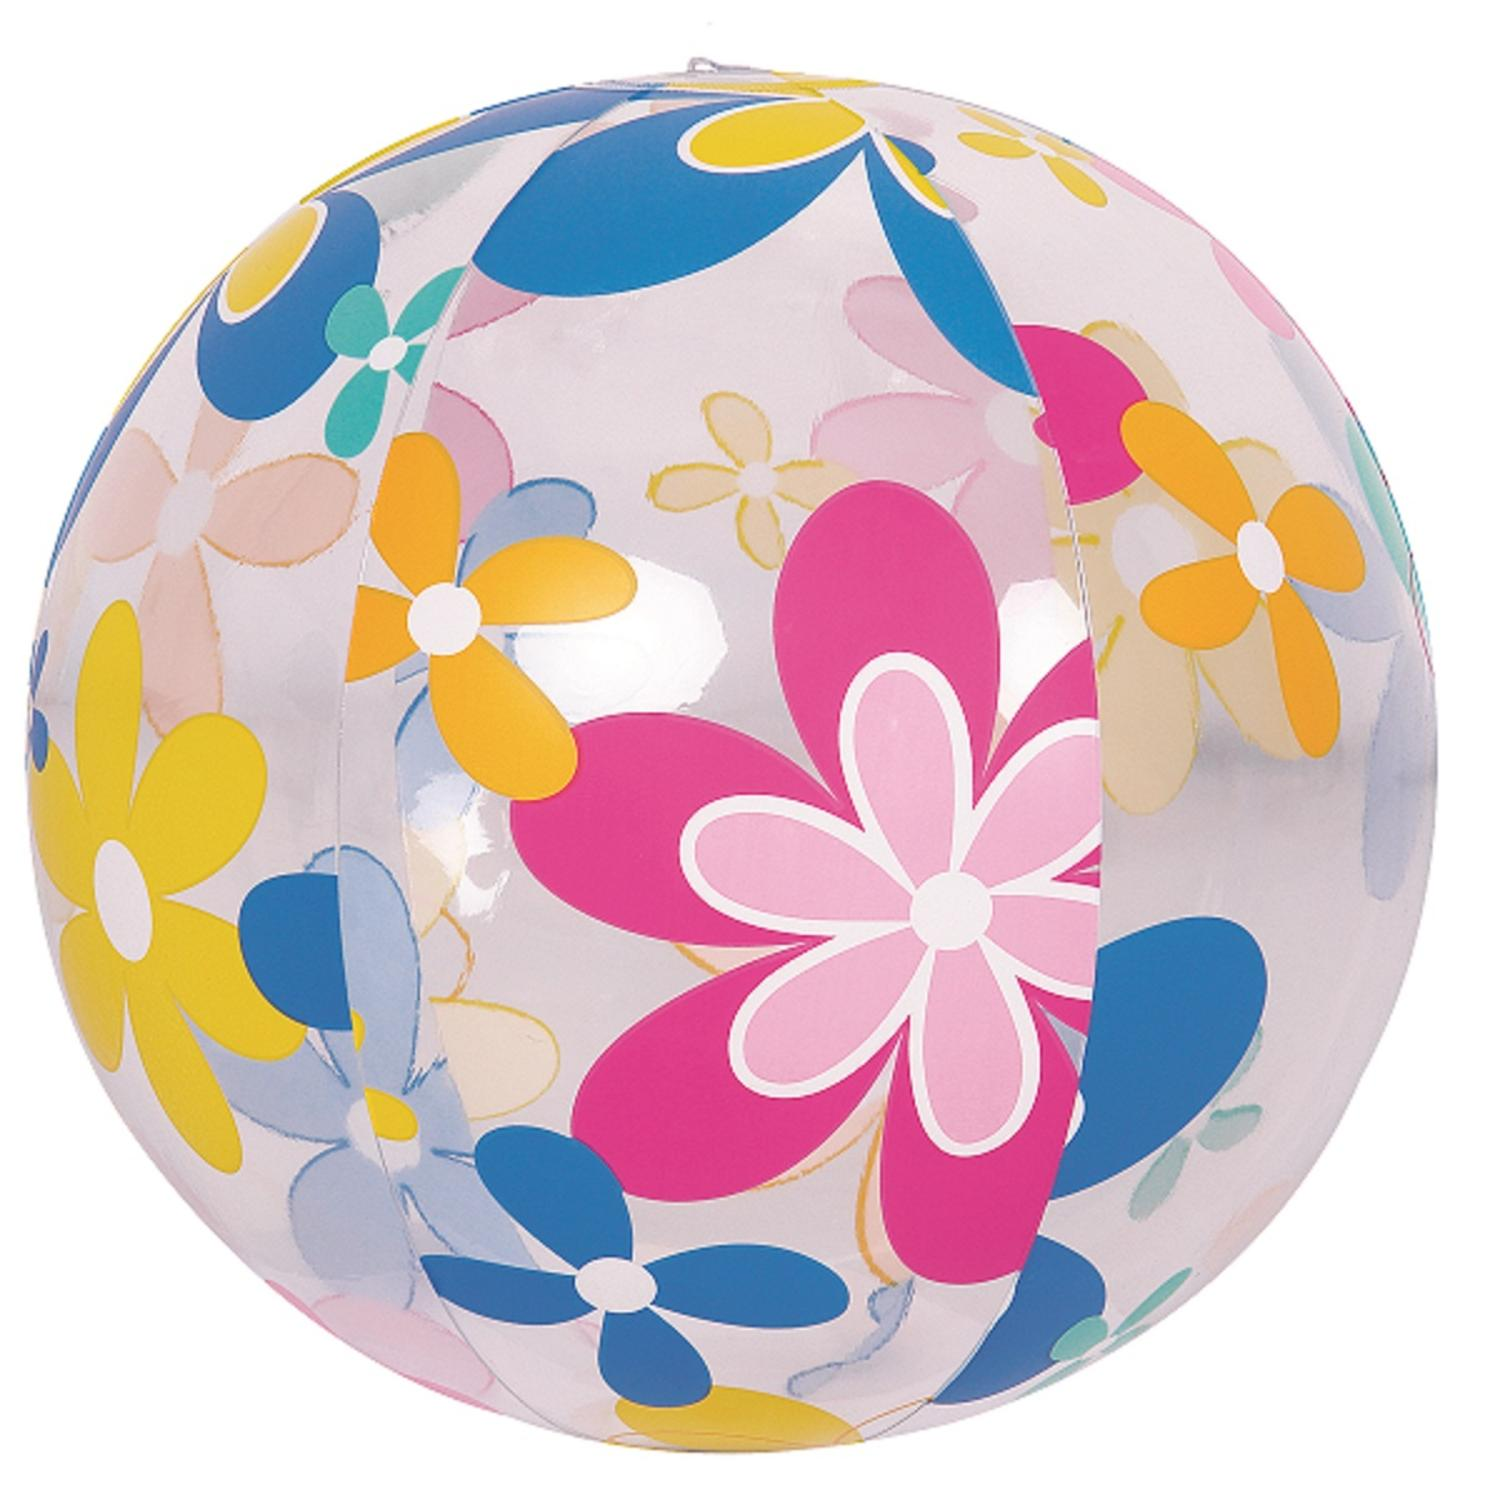 "20"" Colorful 6-Panel Flower Print Inflatable Beach Ball Swimming Pool Toy by Pool Central"